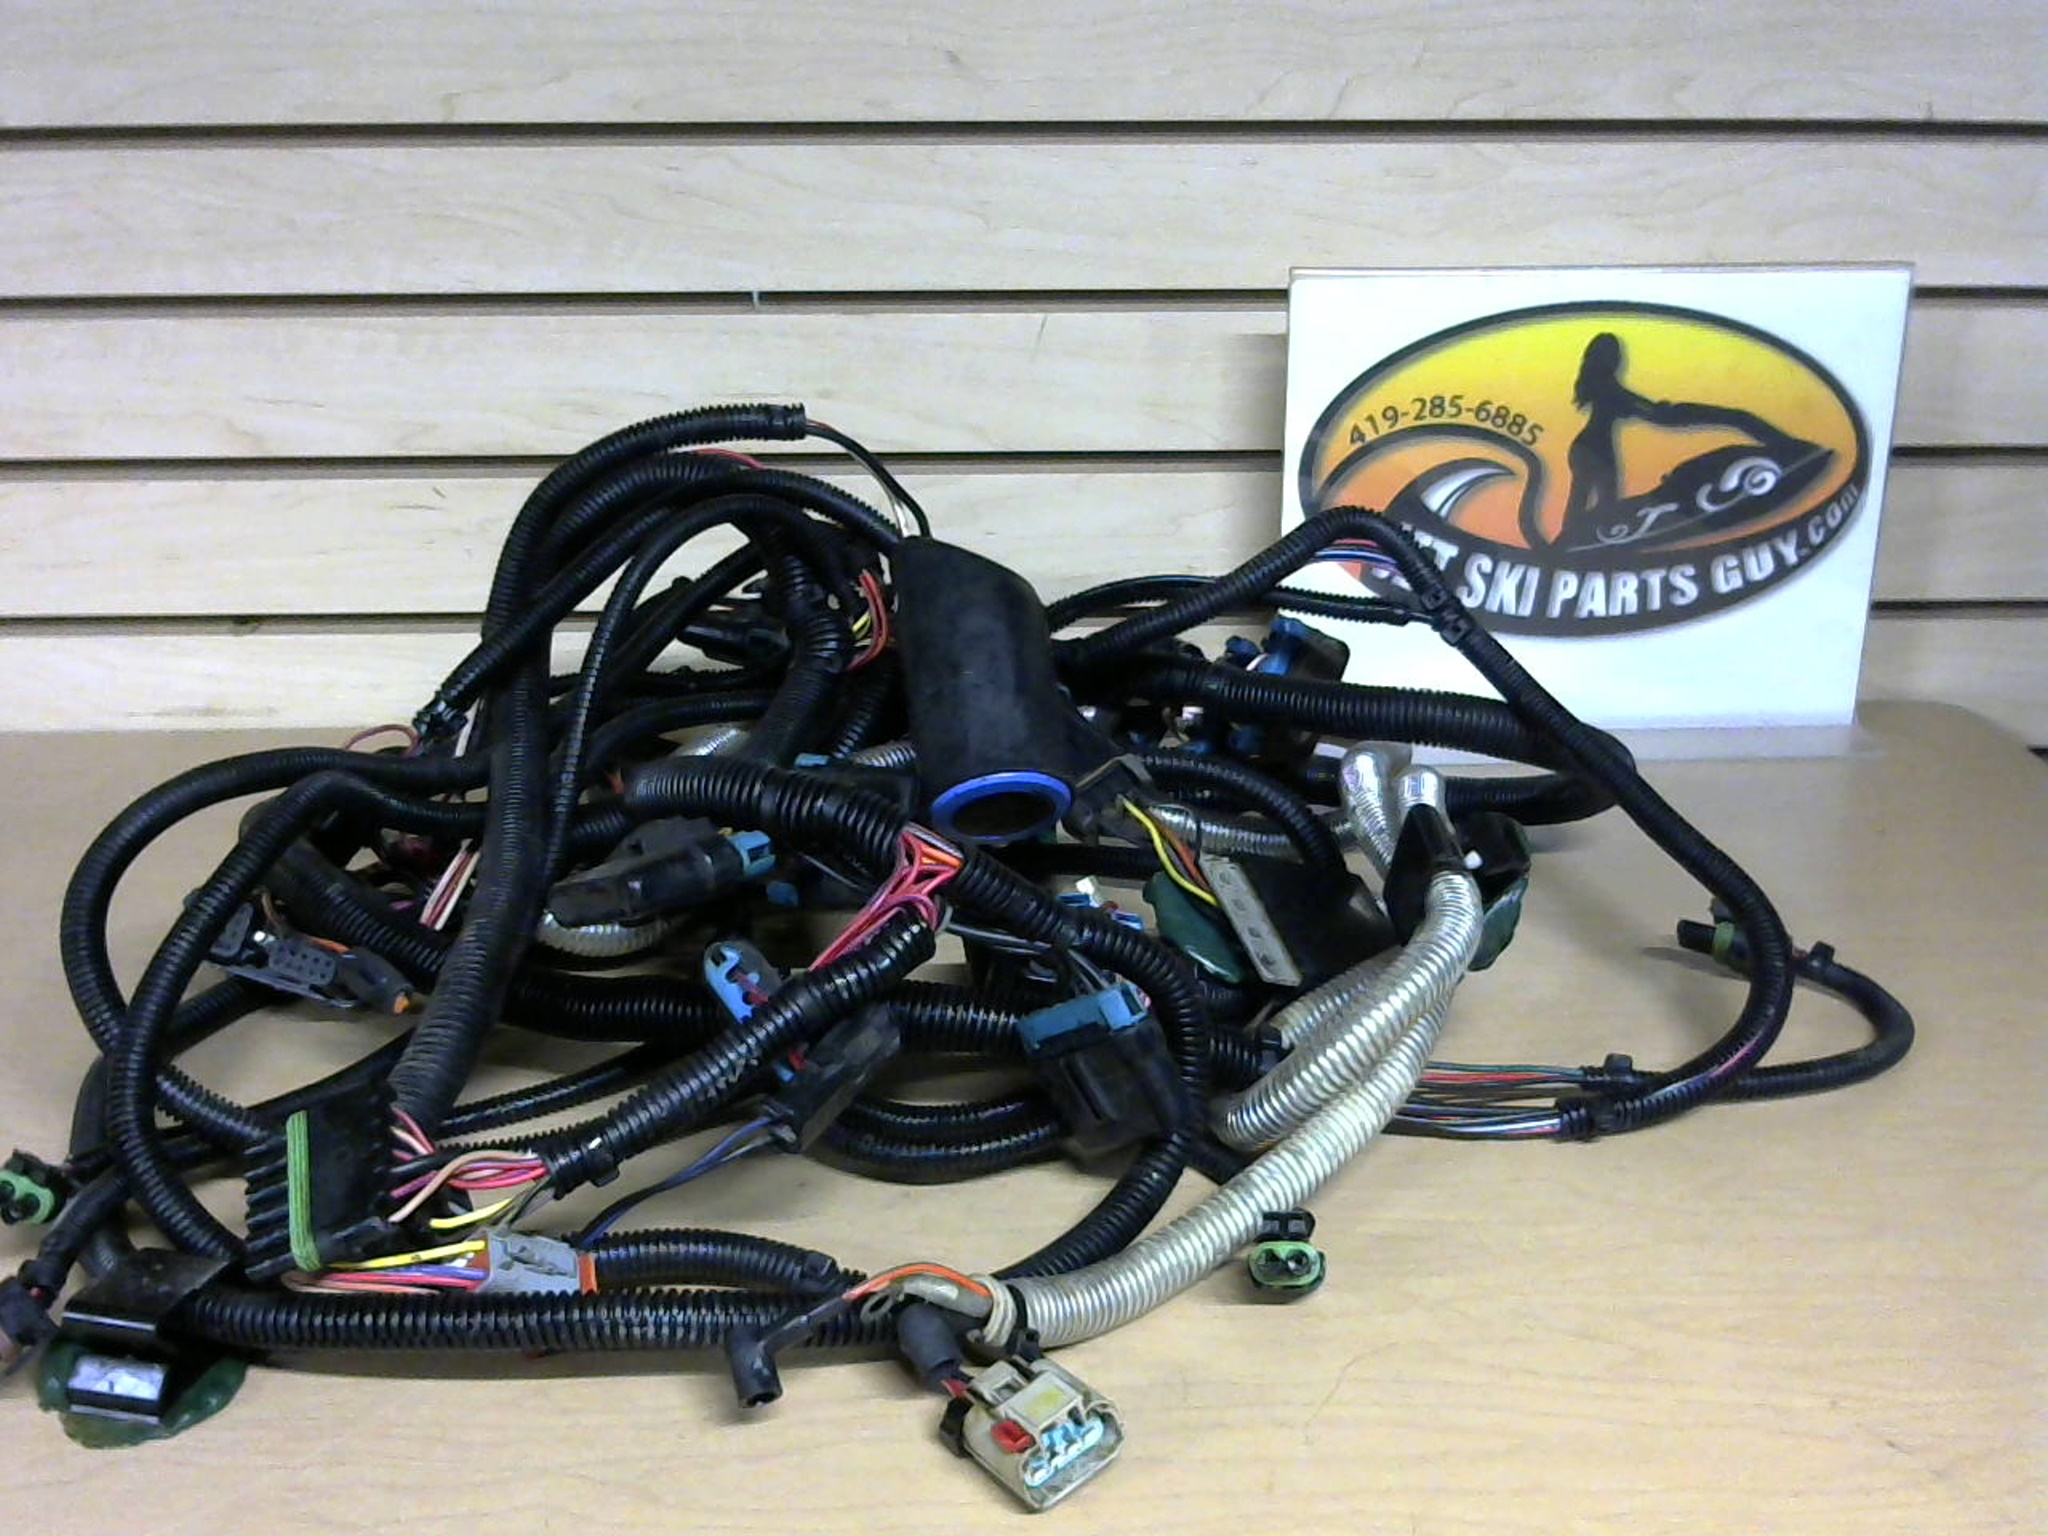 Polaris Parts Wiring Harness Library Connectors 2002 Virage 800 Complete Main 2461071